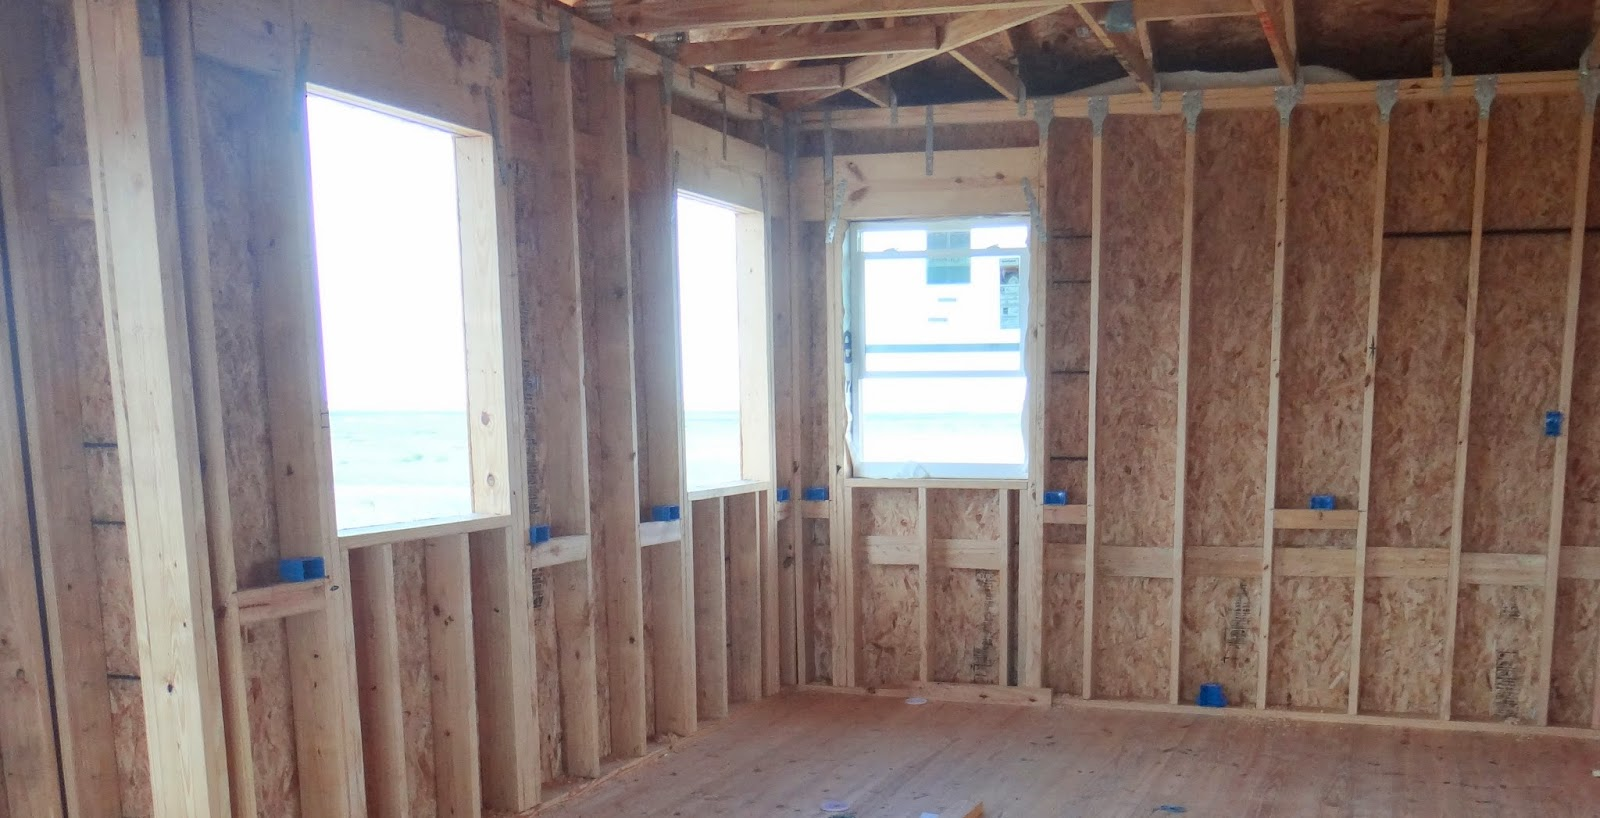 Sweet Home Mustang Island: Rough Wiring, and More Siding